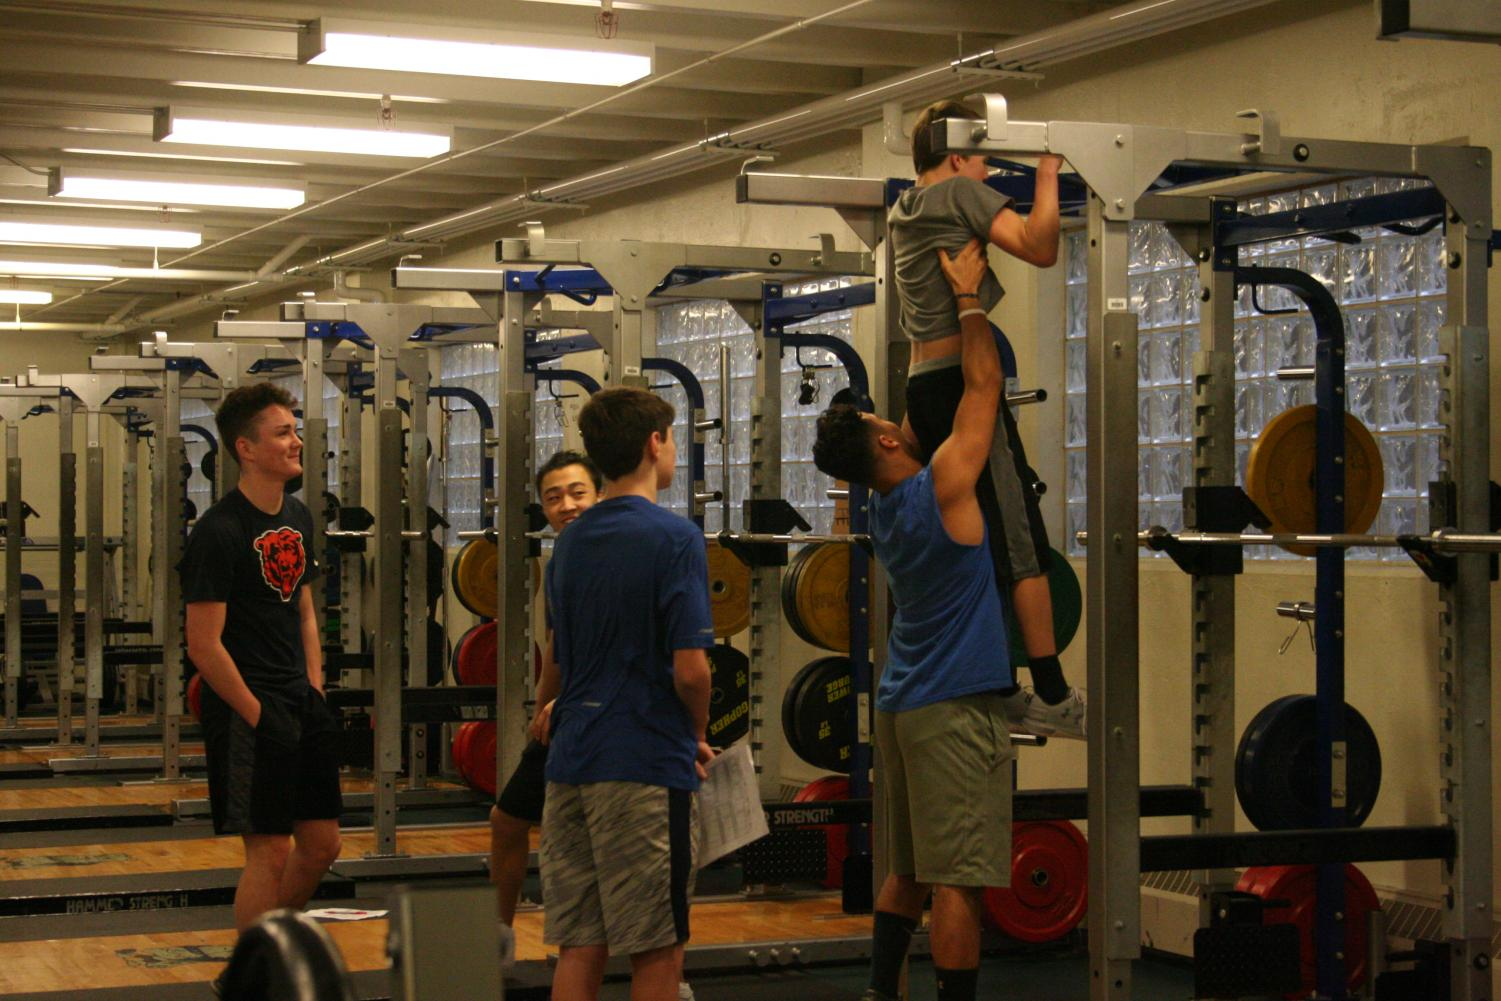 Football players supporting one another during the Commitment Challenge.